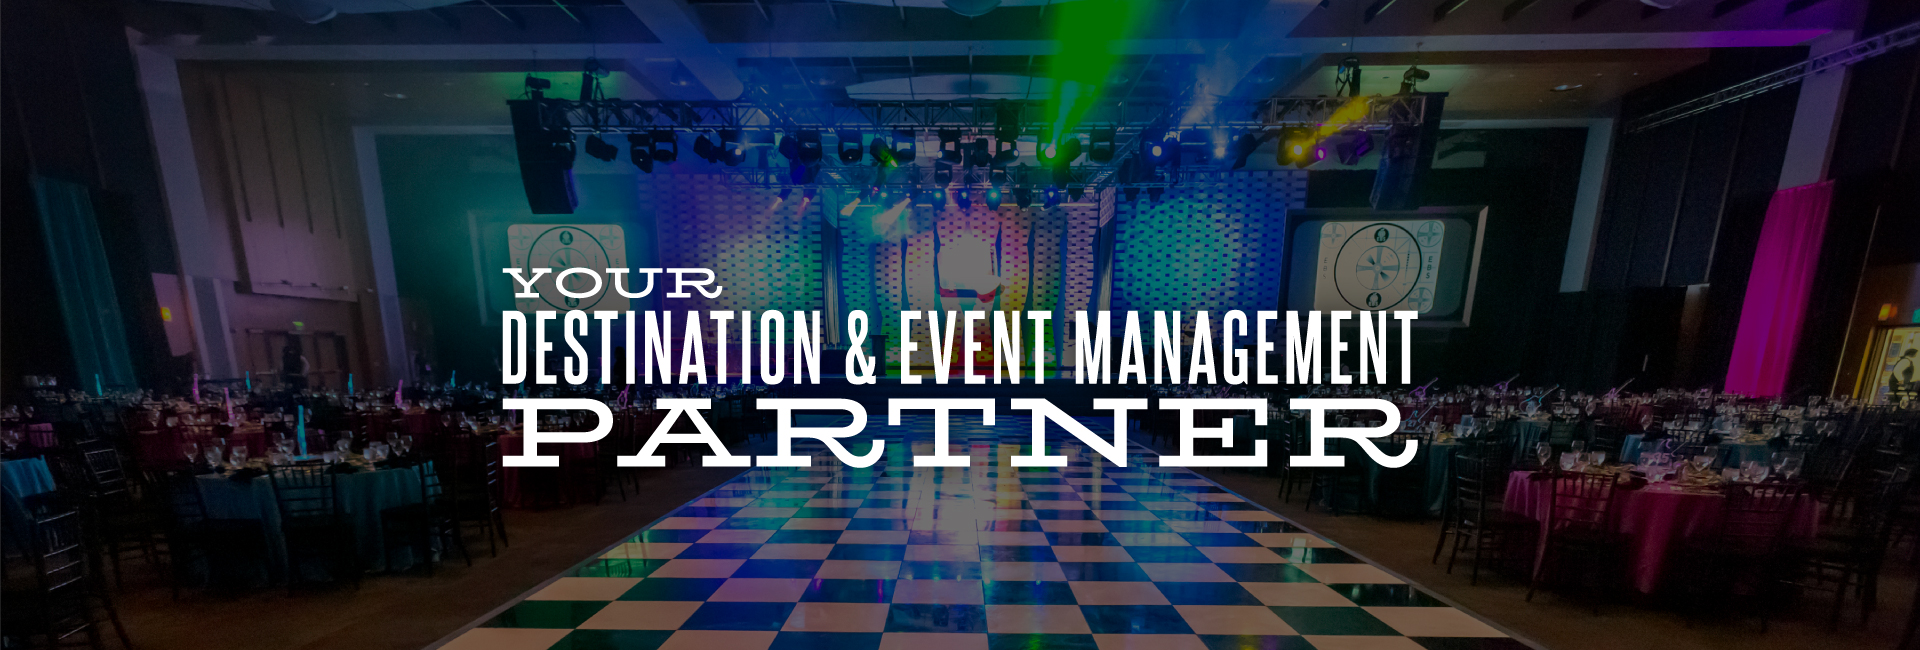 Your Destination and Event Management Partner